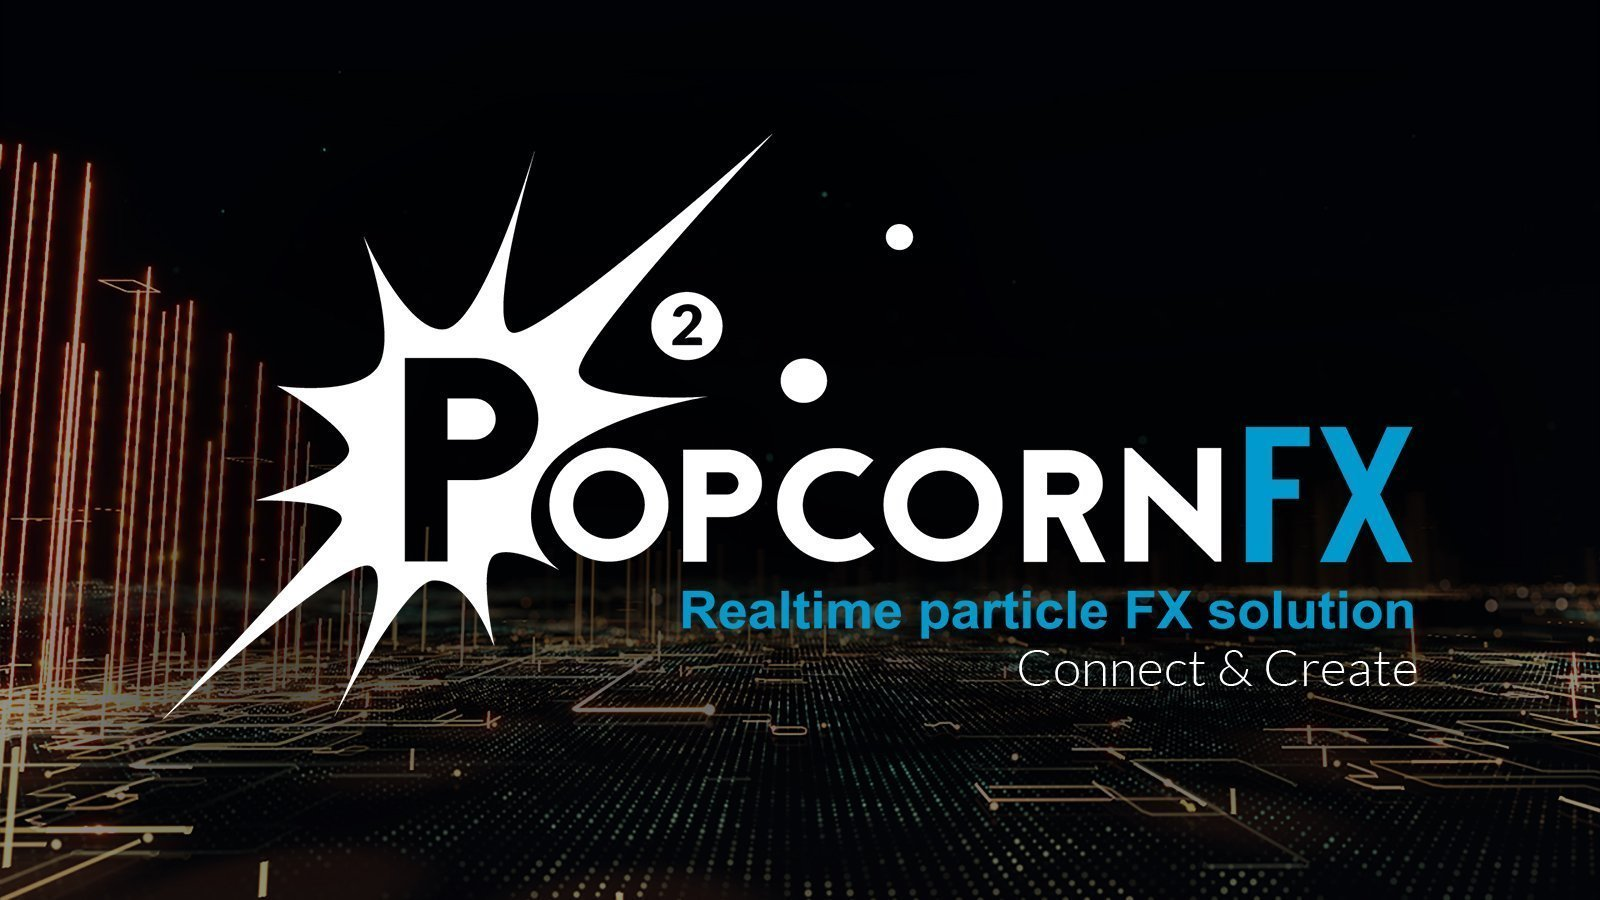 Download PopcornFX v2 - Real-time particles middleware